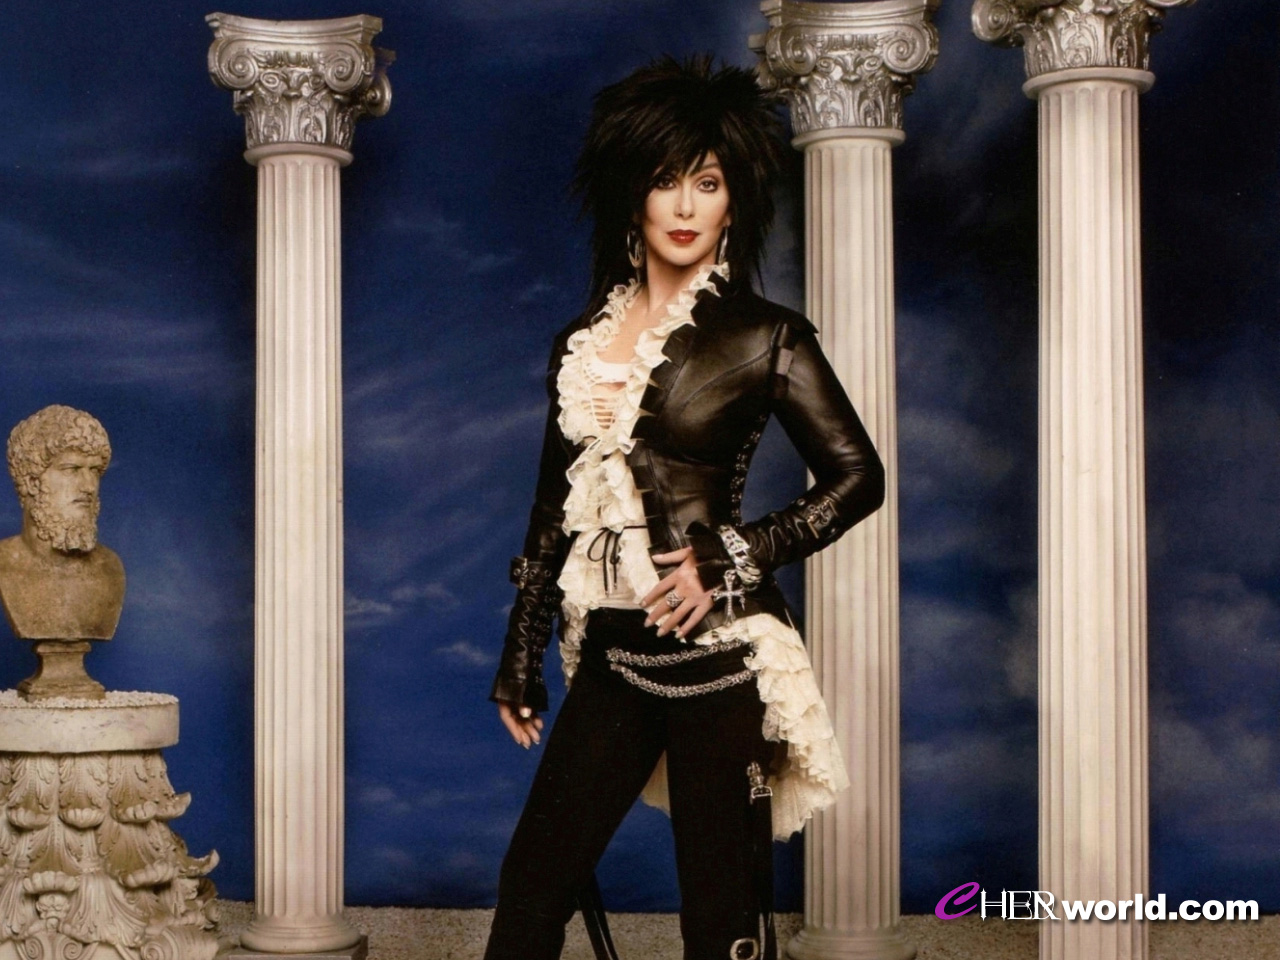 Cher Wallpapers Desktop Background and Themes 1280x960